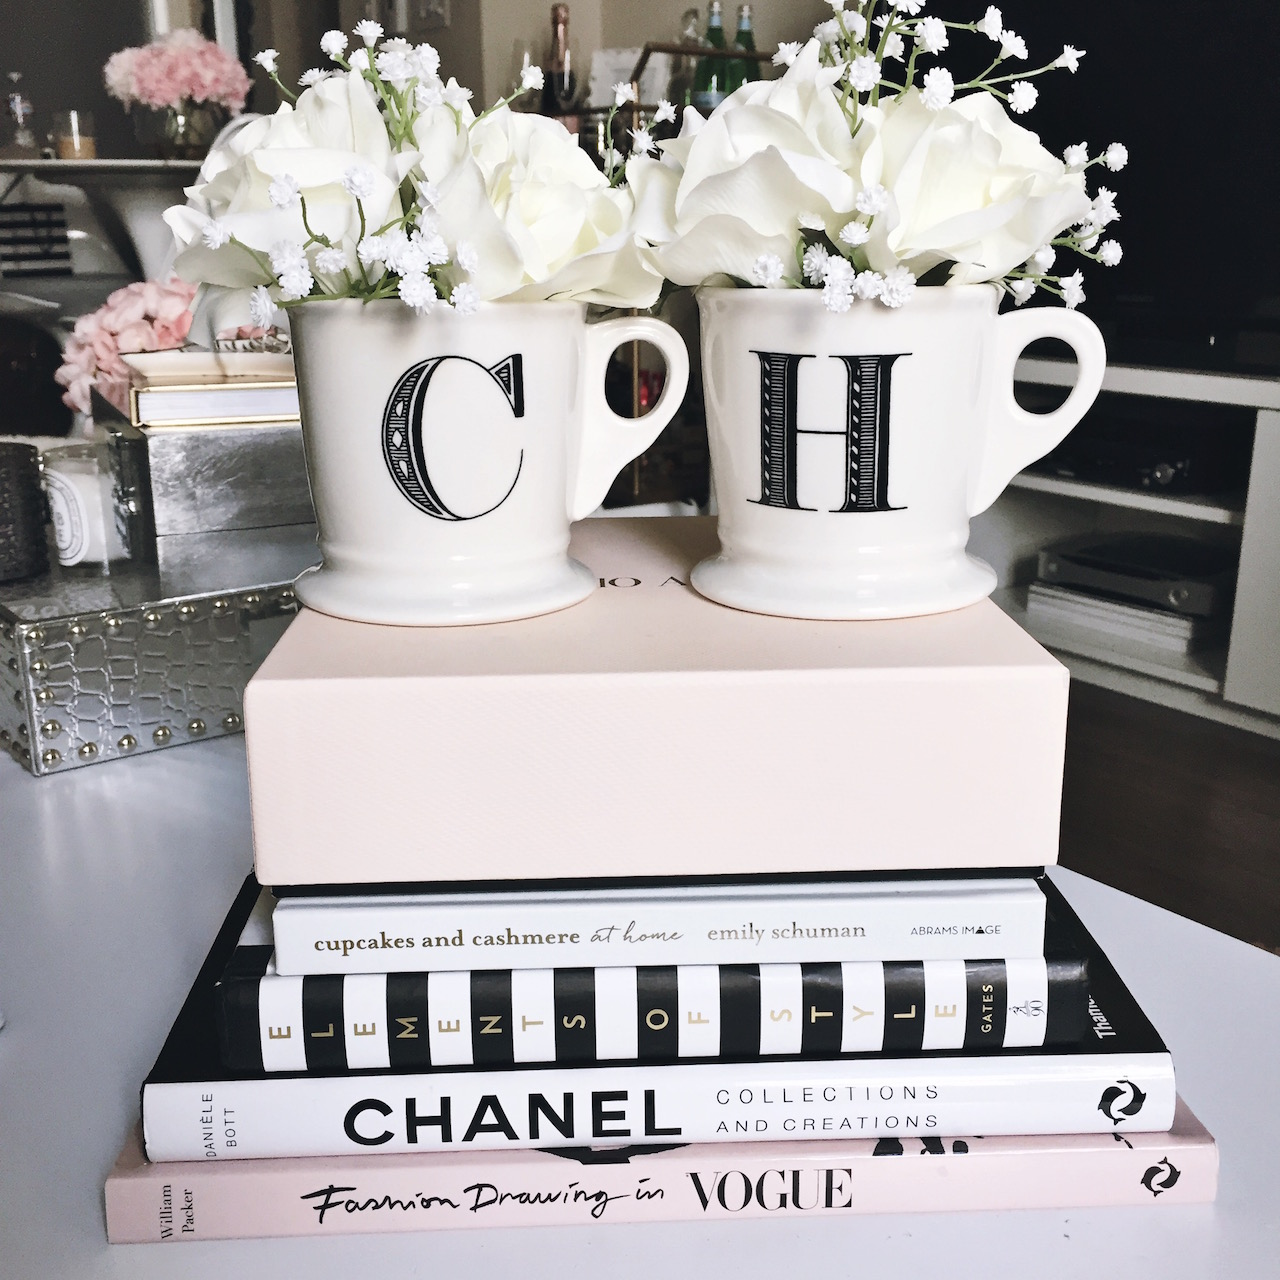 Fashion Book for the coffee table | StyledByBlondie.com